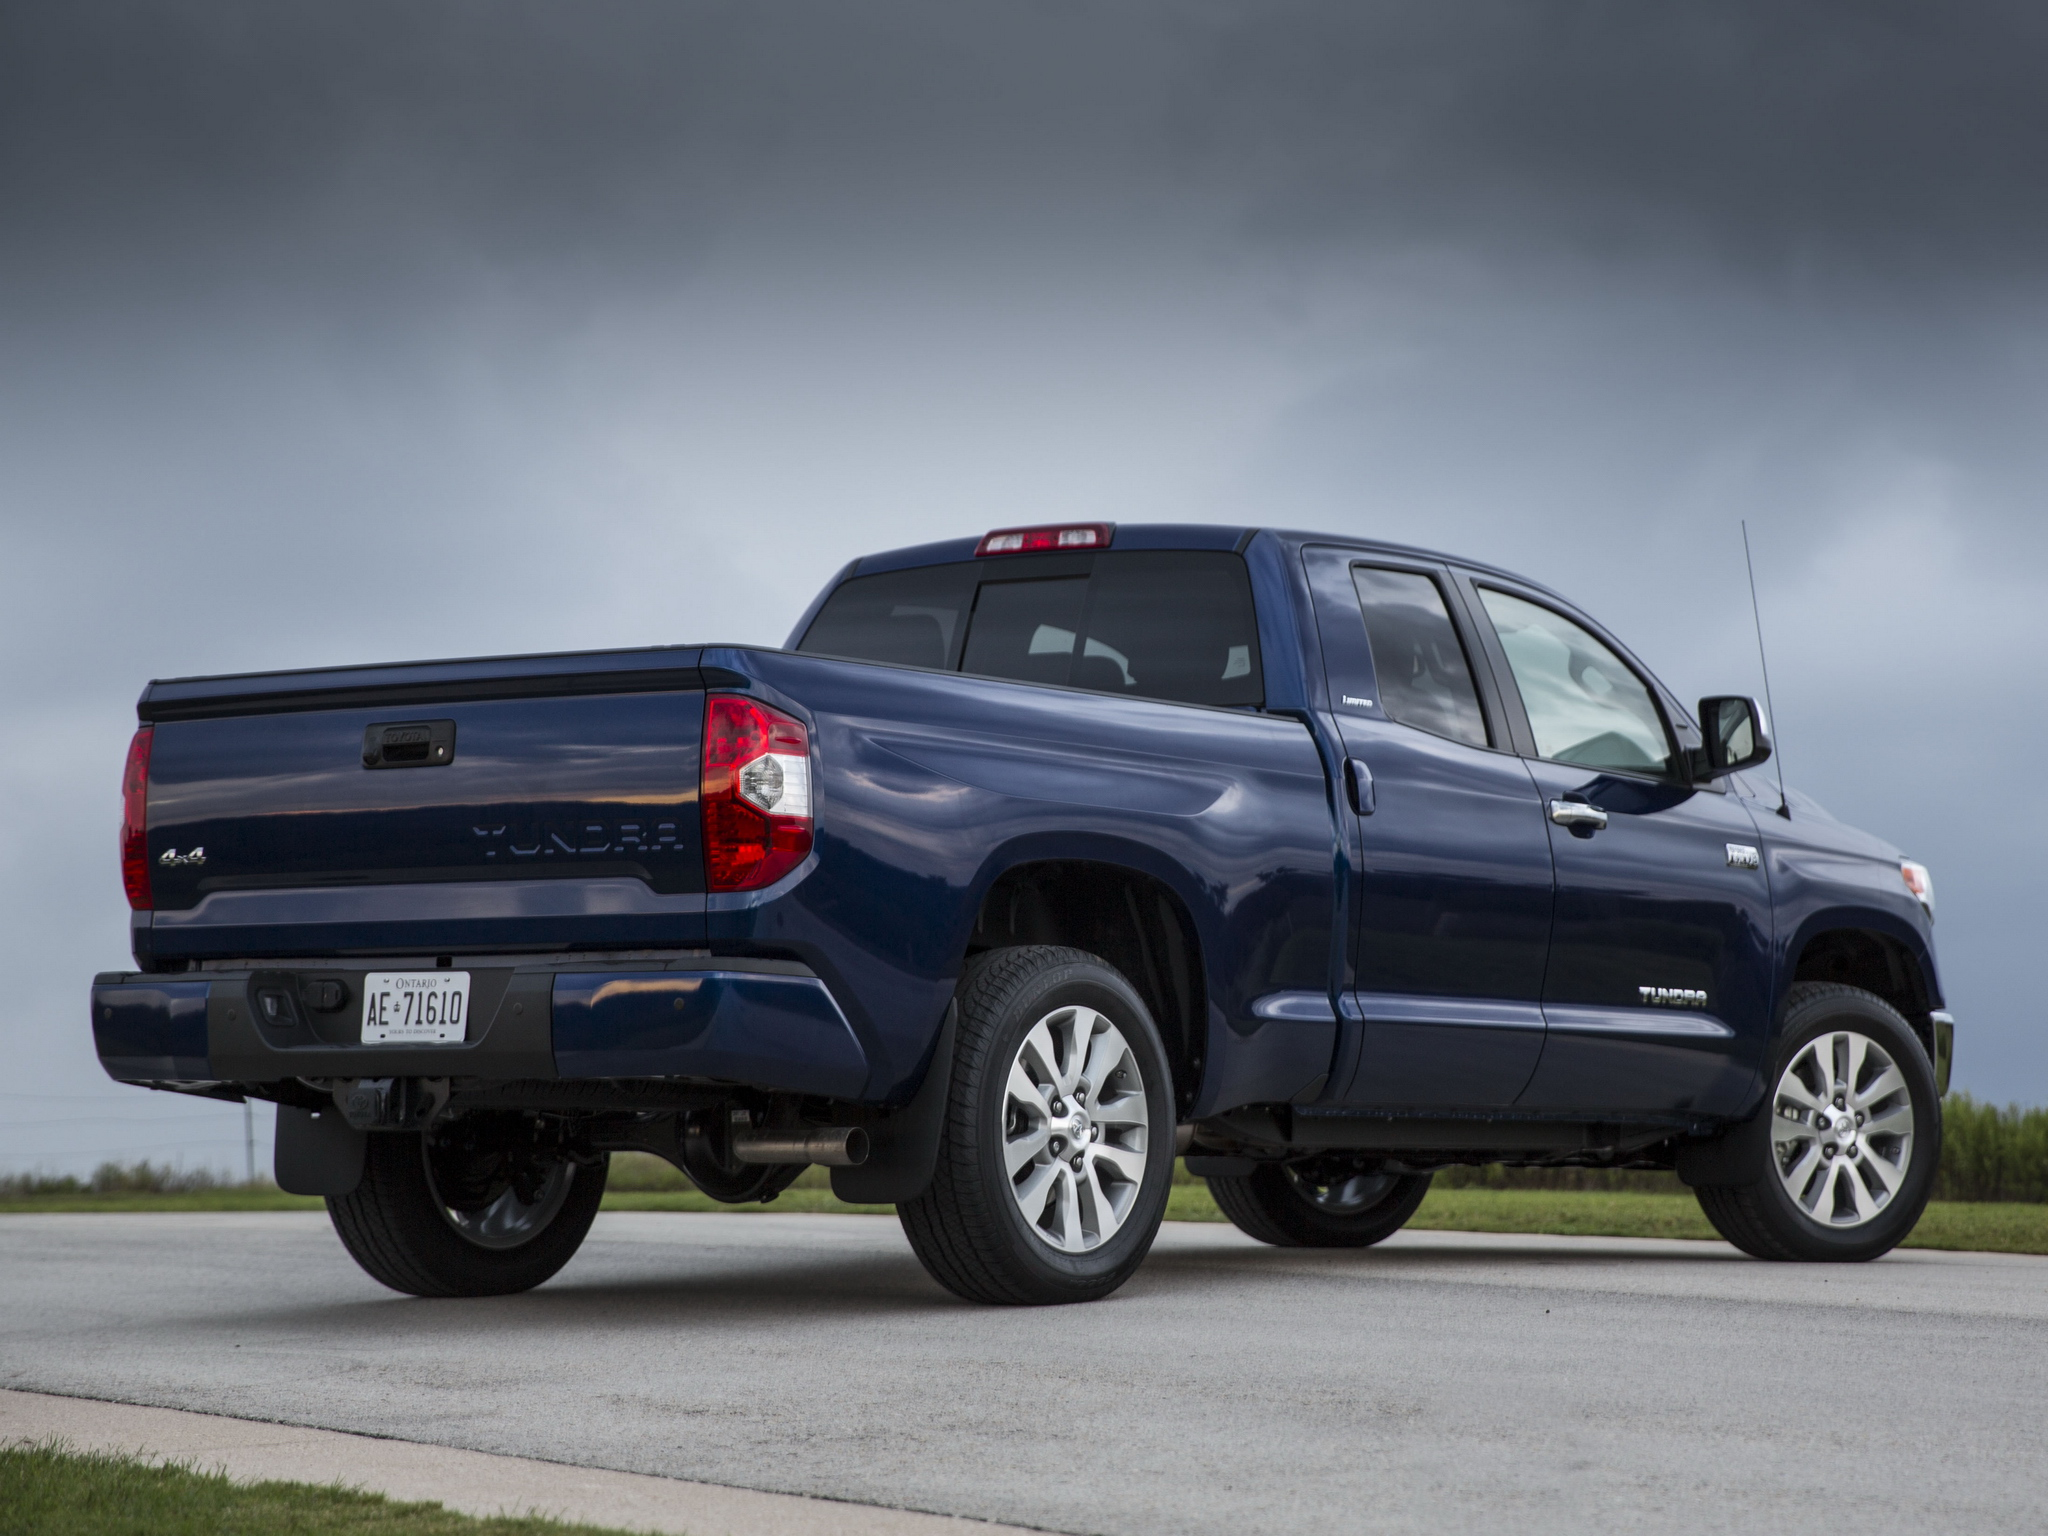 2014 toyota tundra double cab limited pickup fs wallpaper 2048x1536 159346 wallpaperup. Black Bedroom Furniture Sets. Home Design Ideas